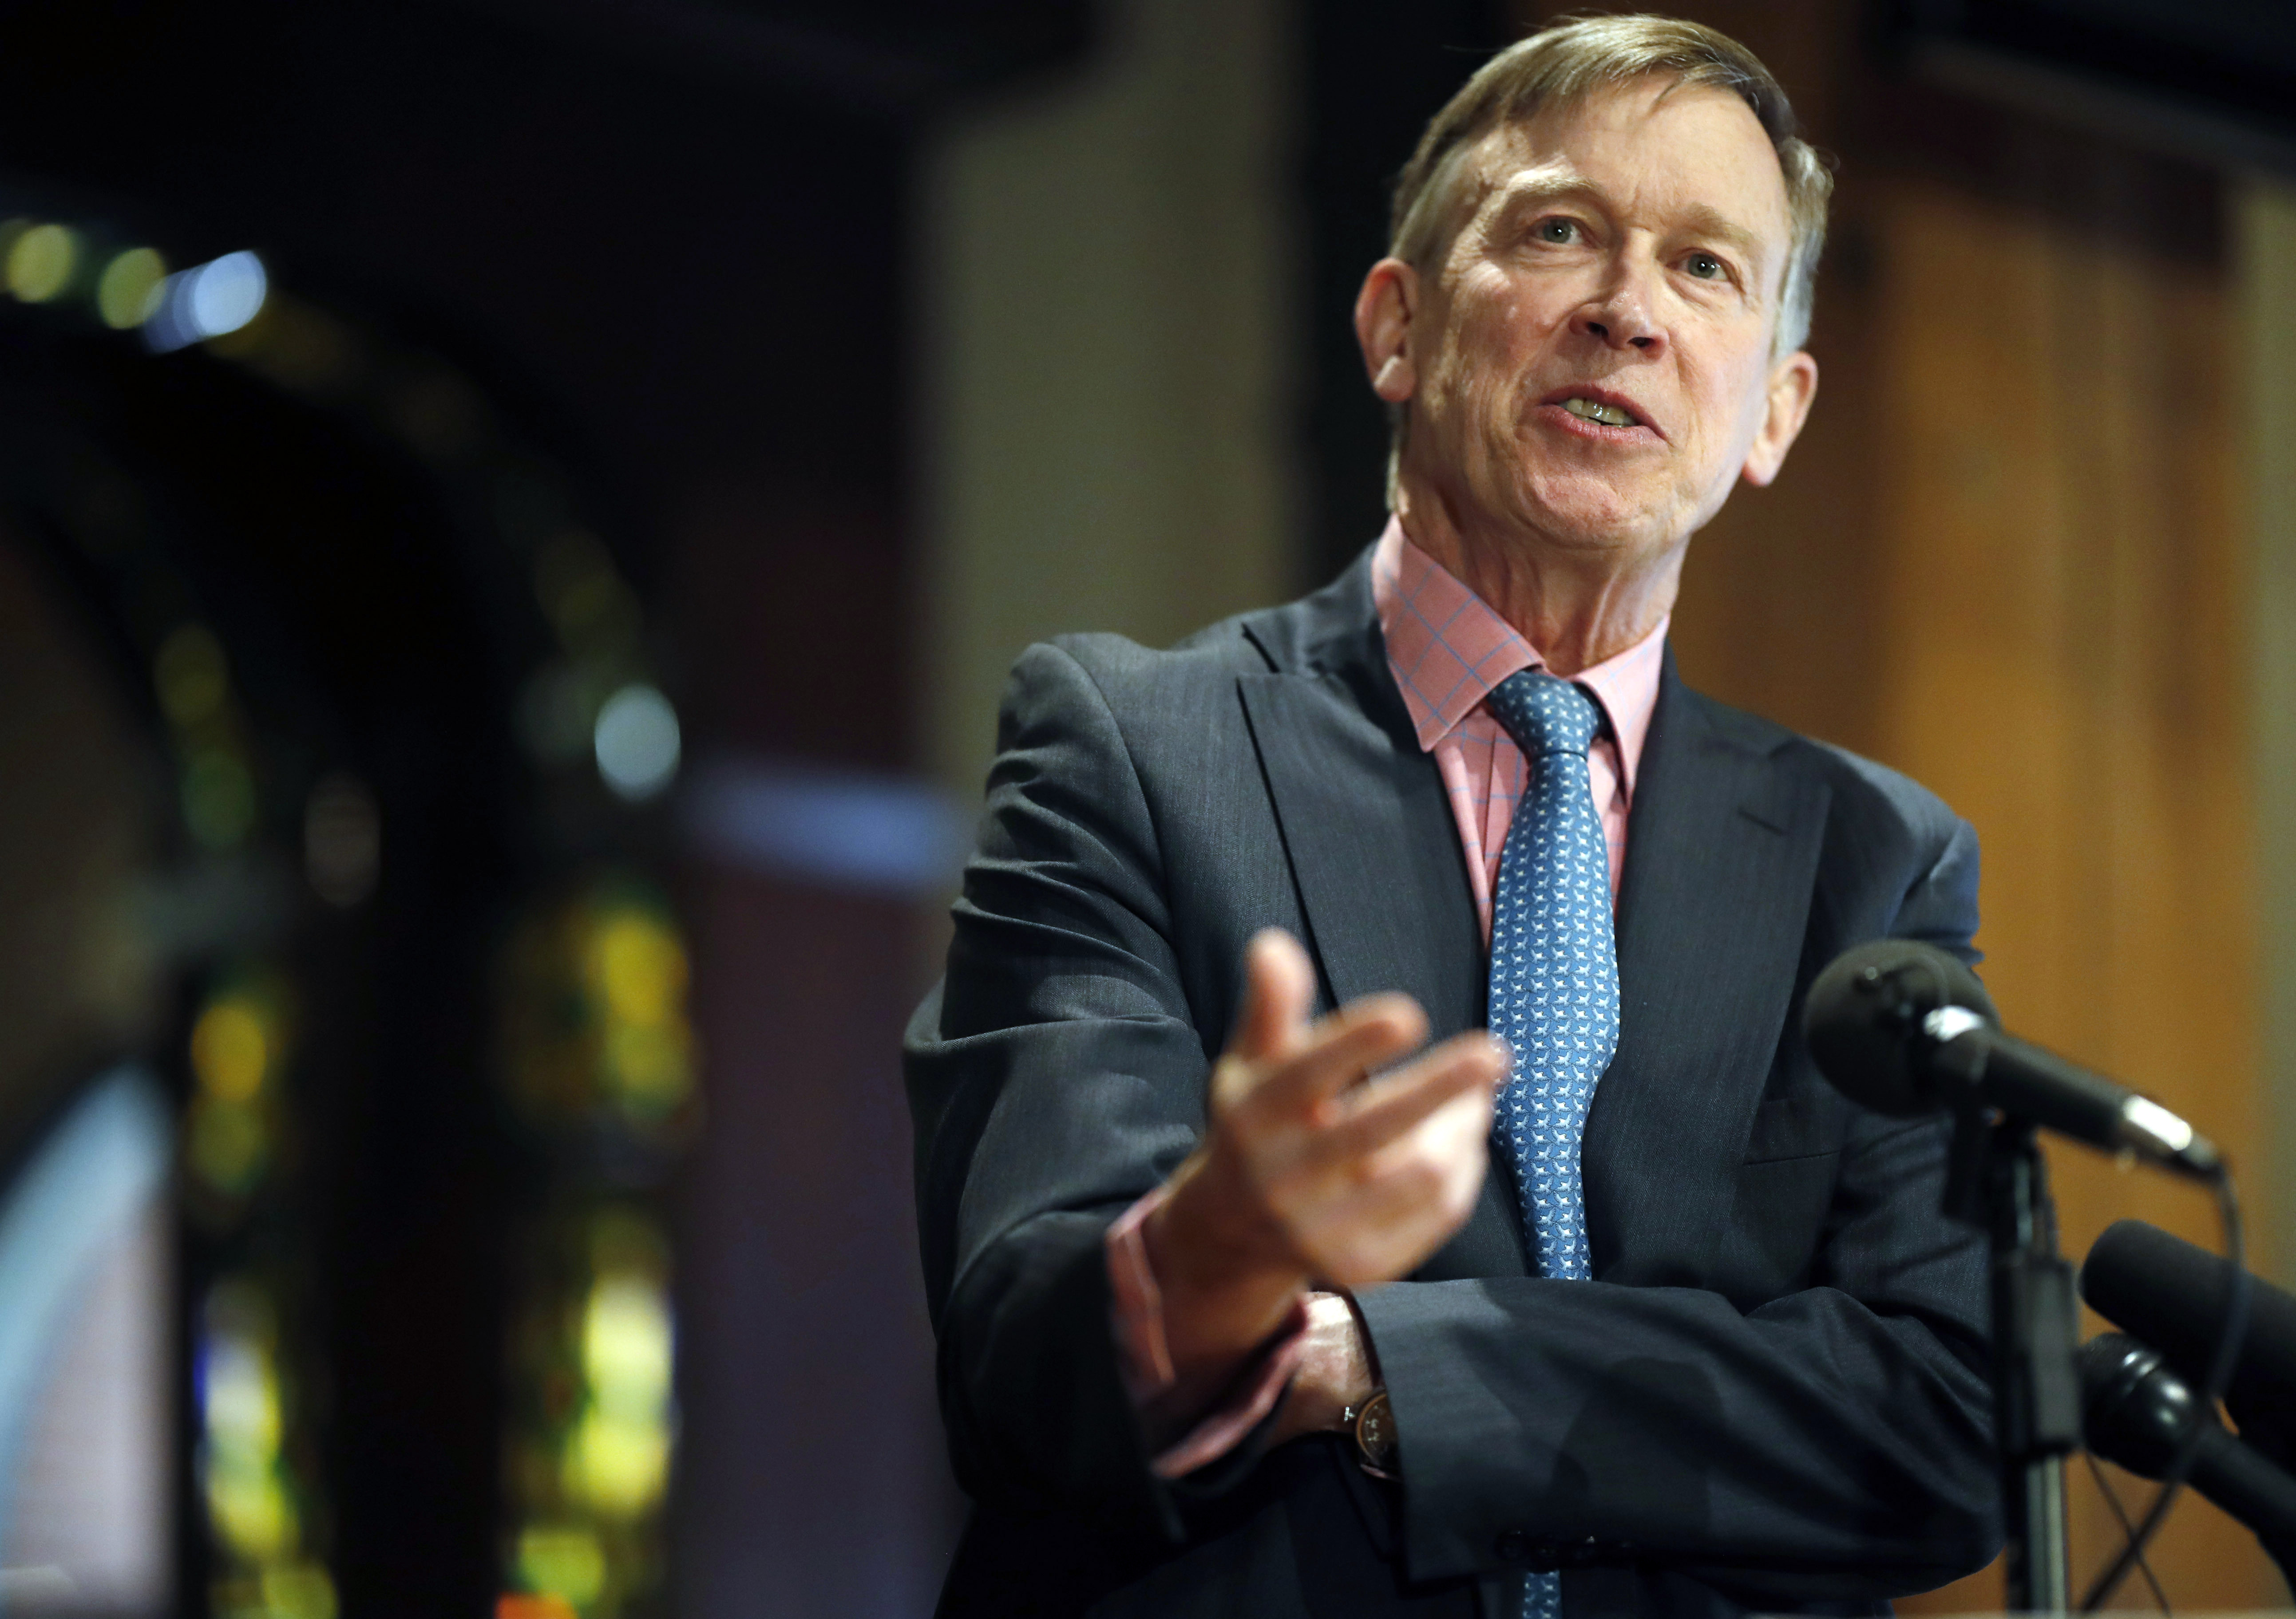 John Hickenlooper wants to expand access to long-acting contraception